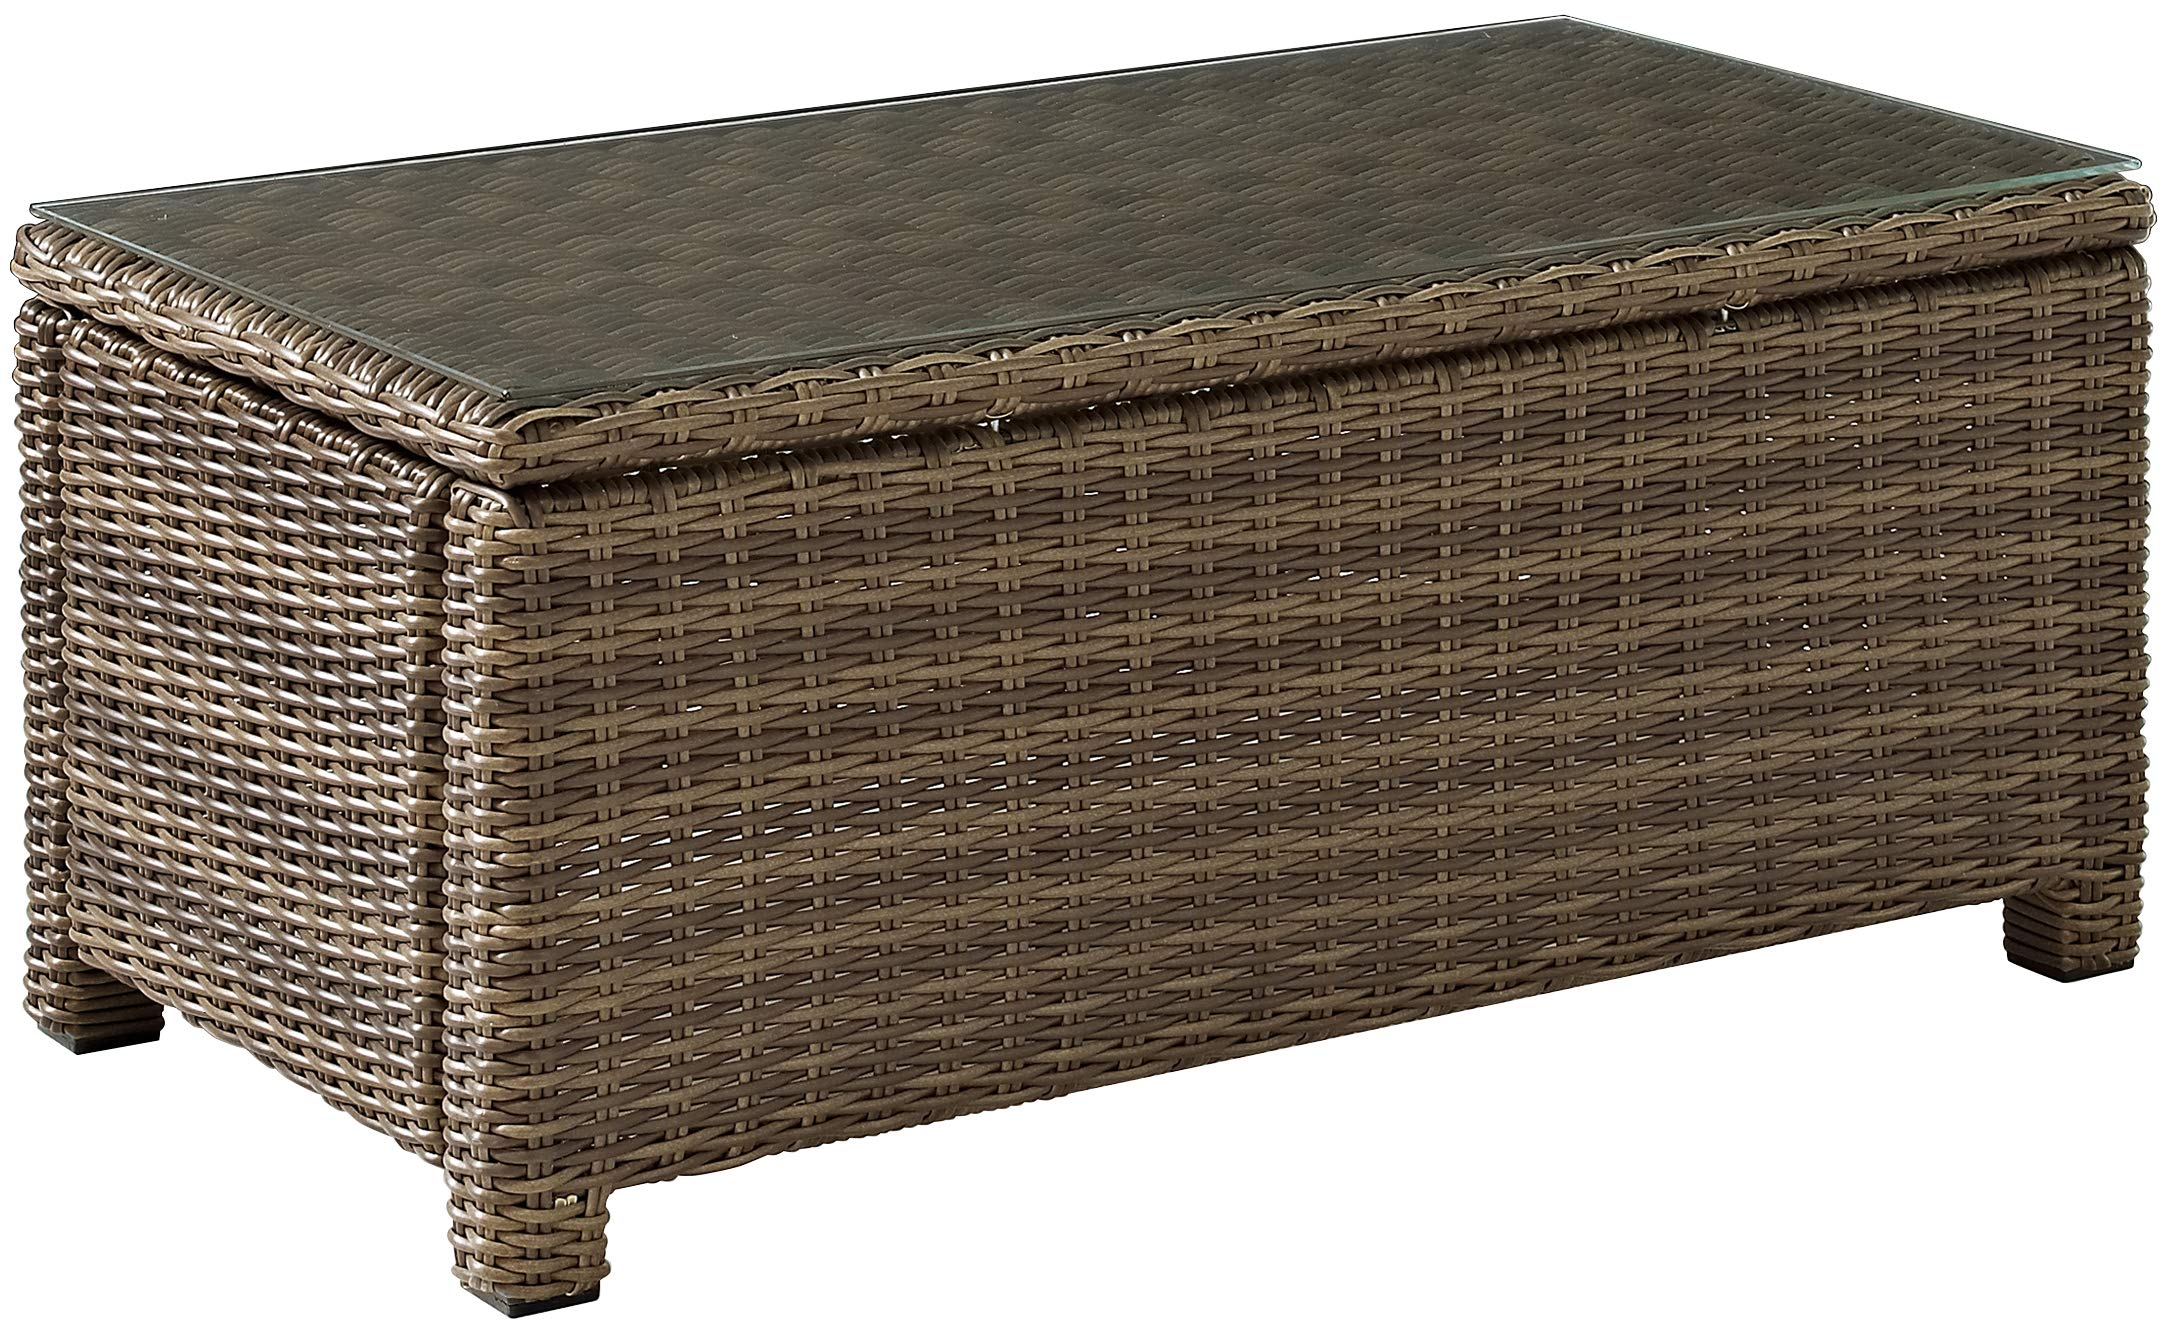 Crosley Furniture Bradenton Outdoor Wicker Conversation Table with Glass Top - Weathered Brown